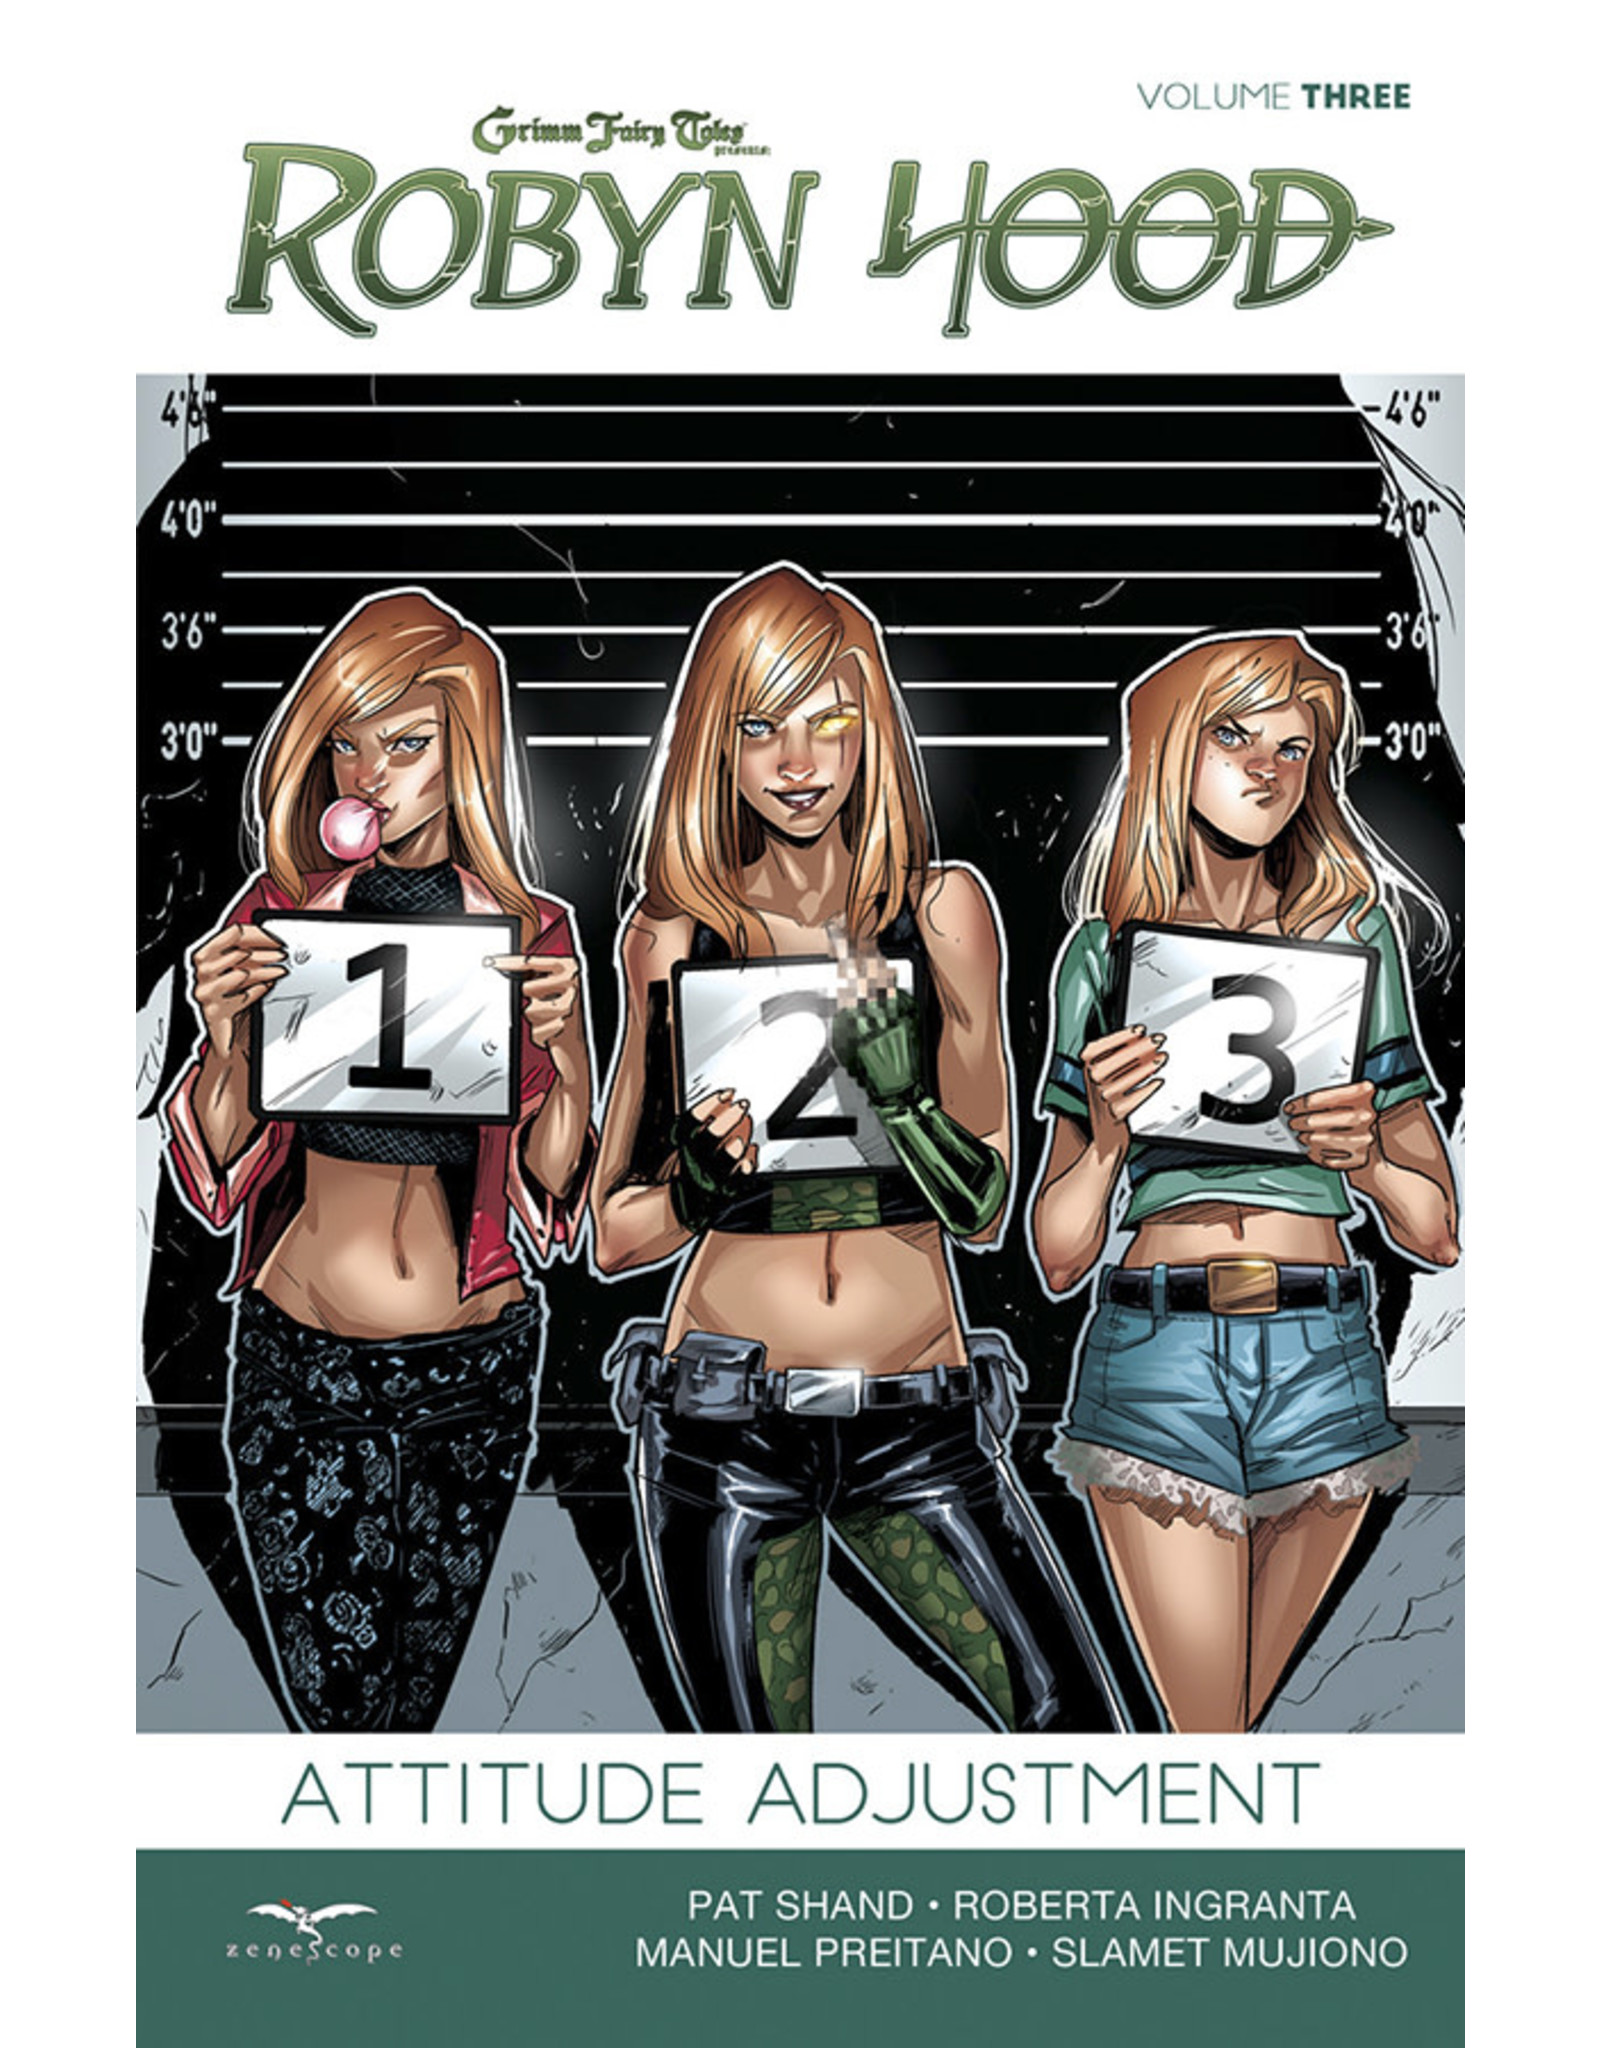 ZENESCOPE ENTERTAINMENT INC ROBYN HOOD ONGOING TP VOL 03 ATTITUDE ADJUSTMENT